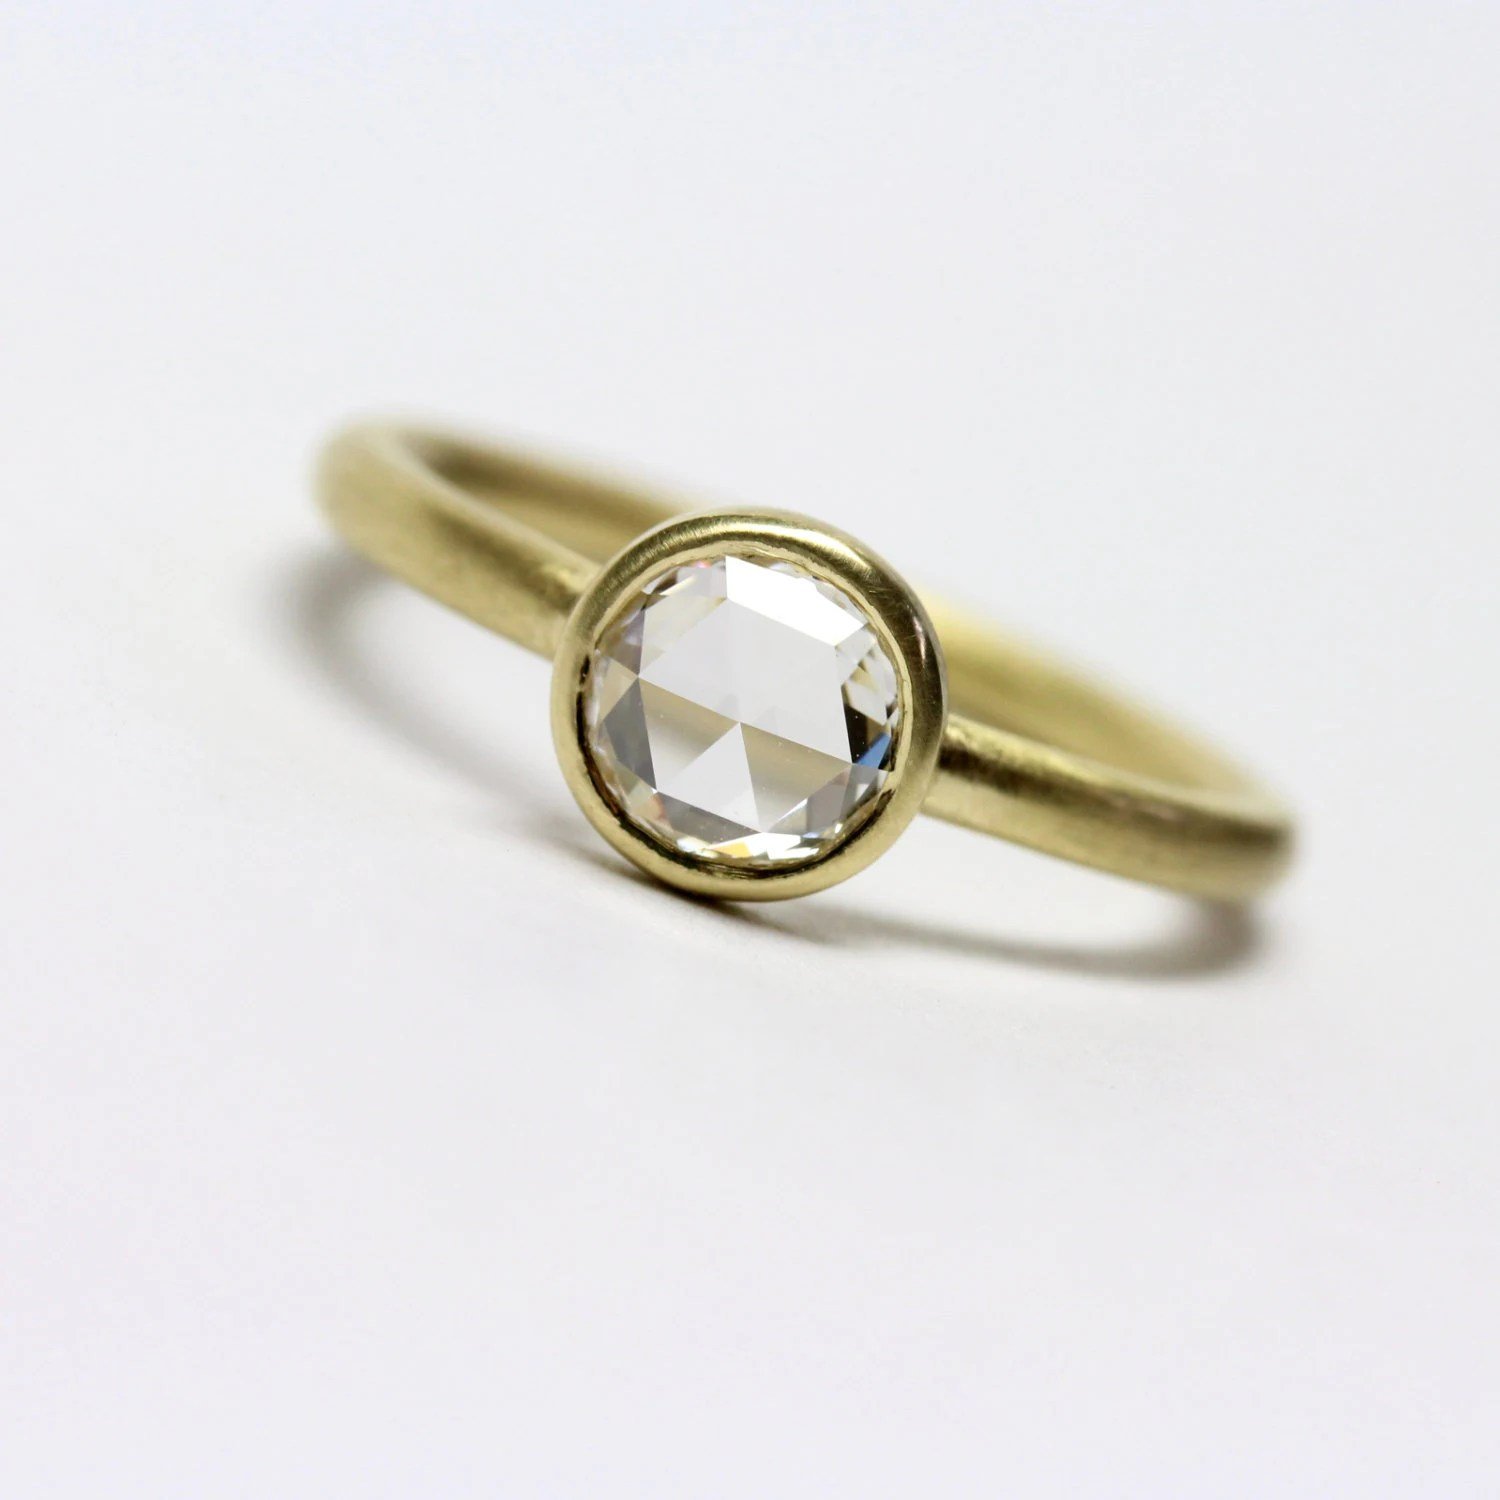 low profile ring low profile wedding ring Clear White Rose Cut Diamond Engagement Ring 18k Yellow Gold Round High Quality Glitter Moon Minimalistic Modern Low Profile Glitzermond